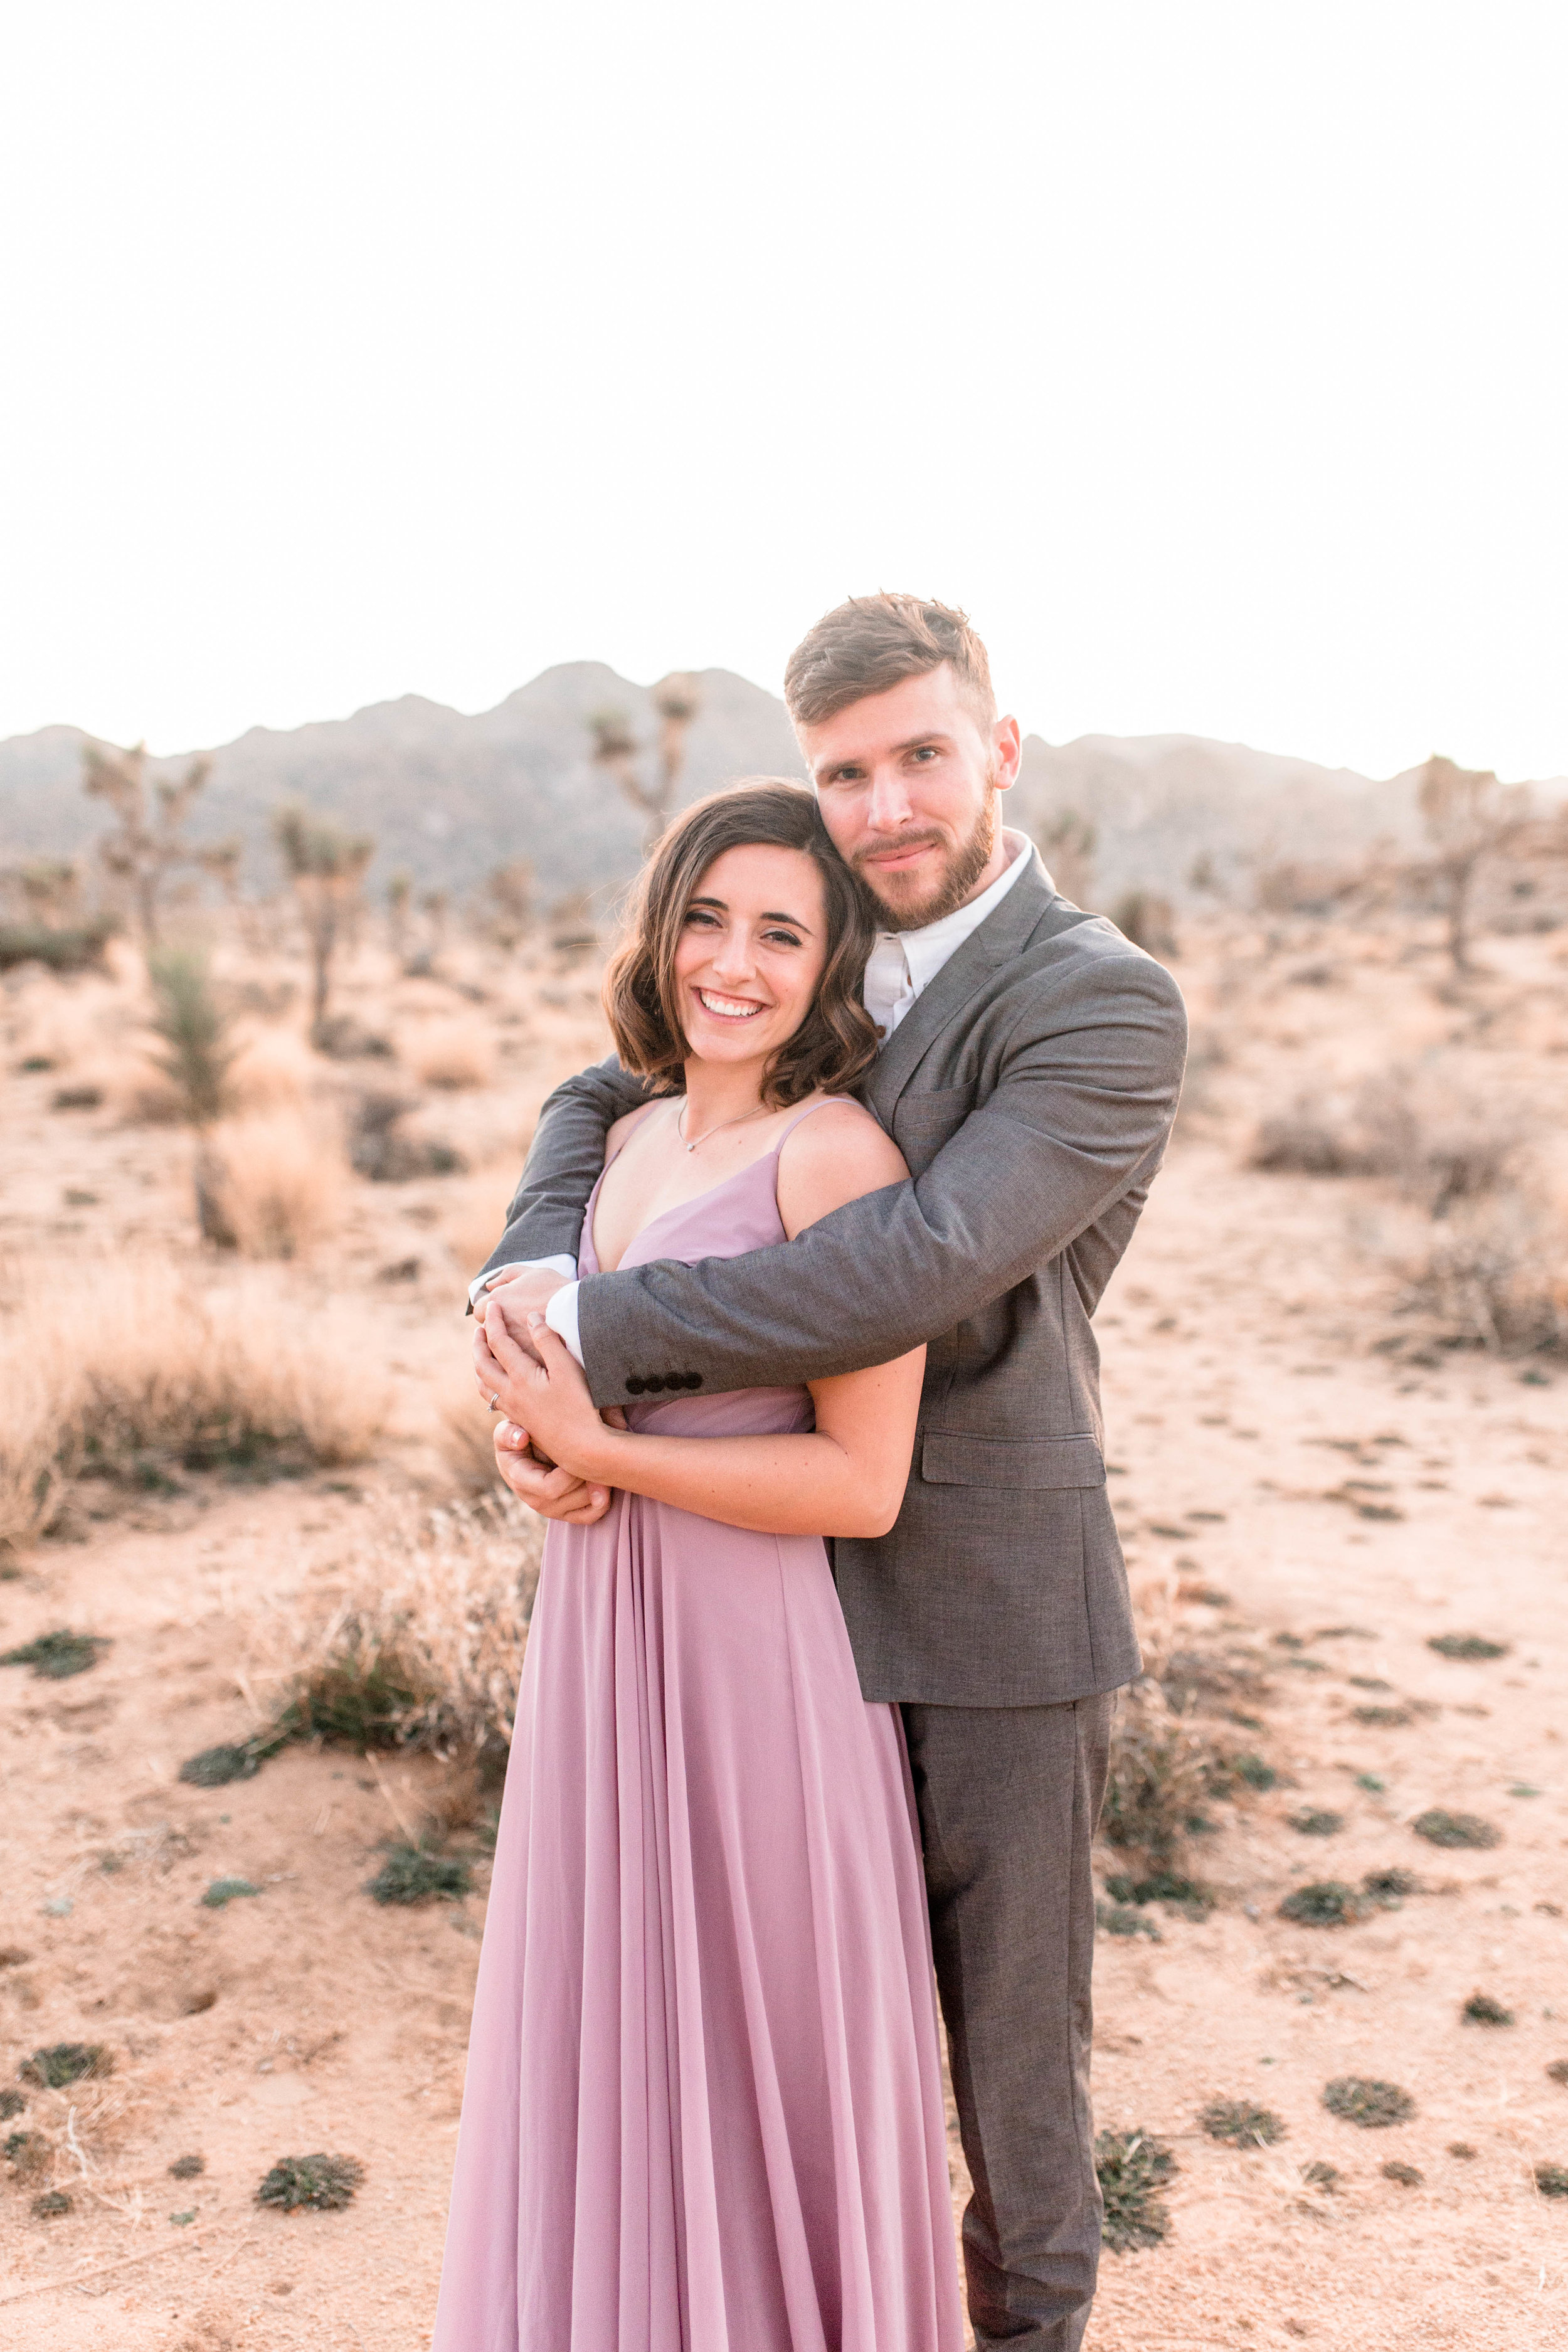 Nicole-Daacke-Photography-Adventure-Engagement-couples-Session-joshua-tree-Golden-desert-love-california-photographer-12.jpg